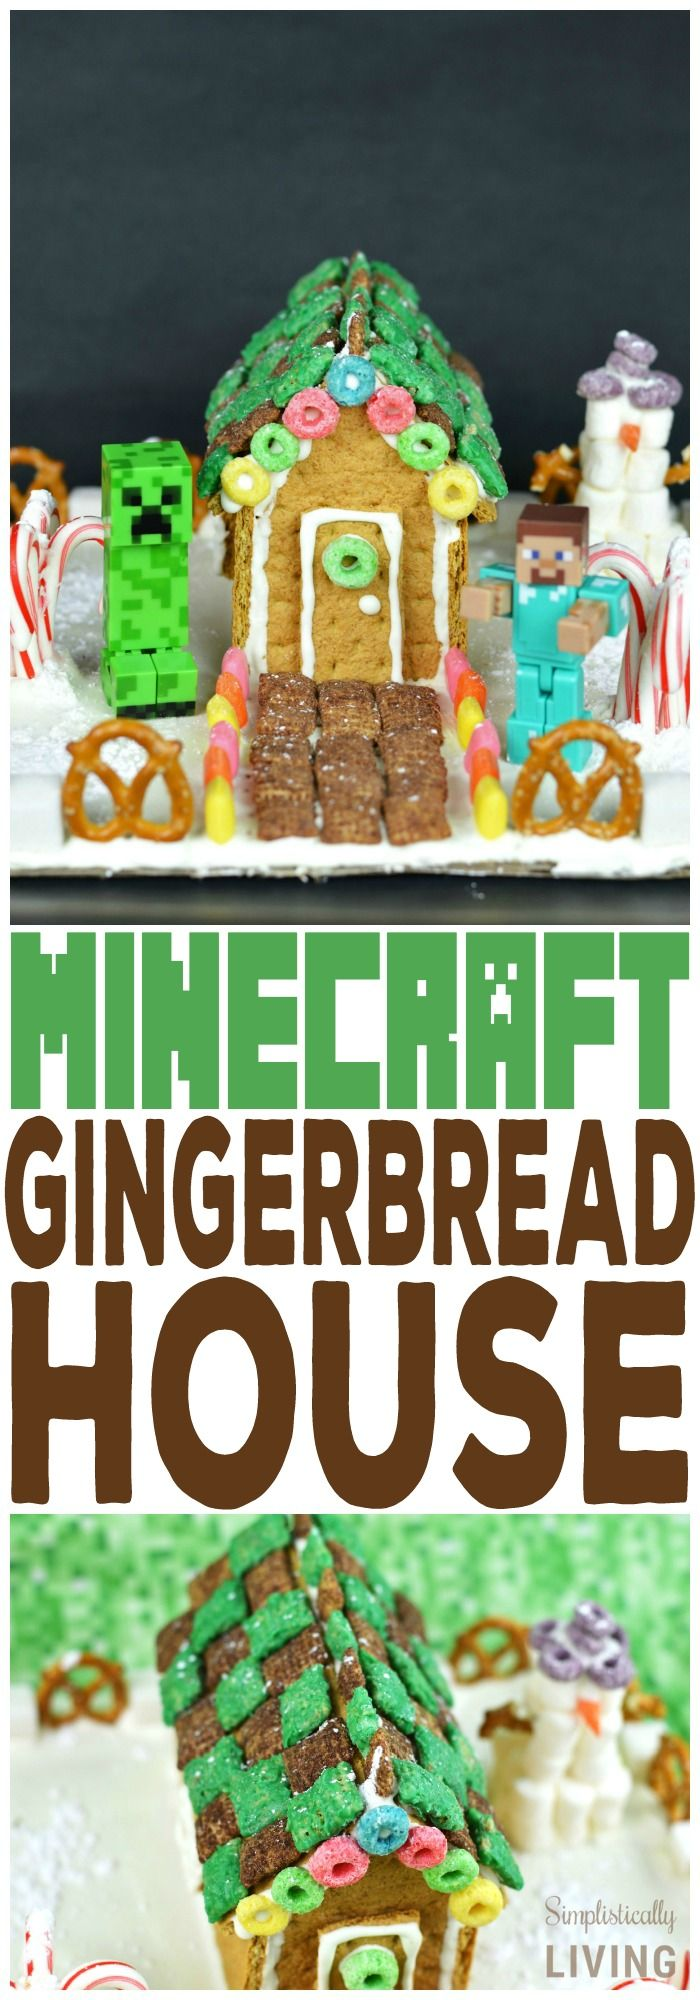 Minecraft Gingerbread House Simplistically Living #ad #HoneyMaidHouse